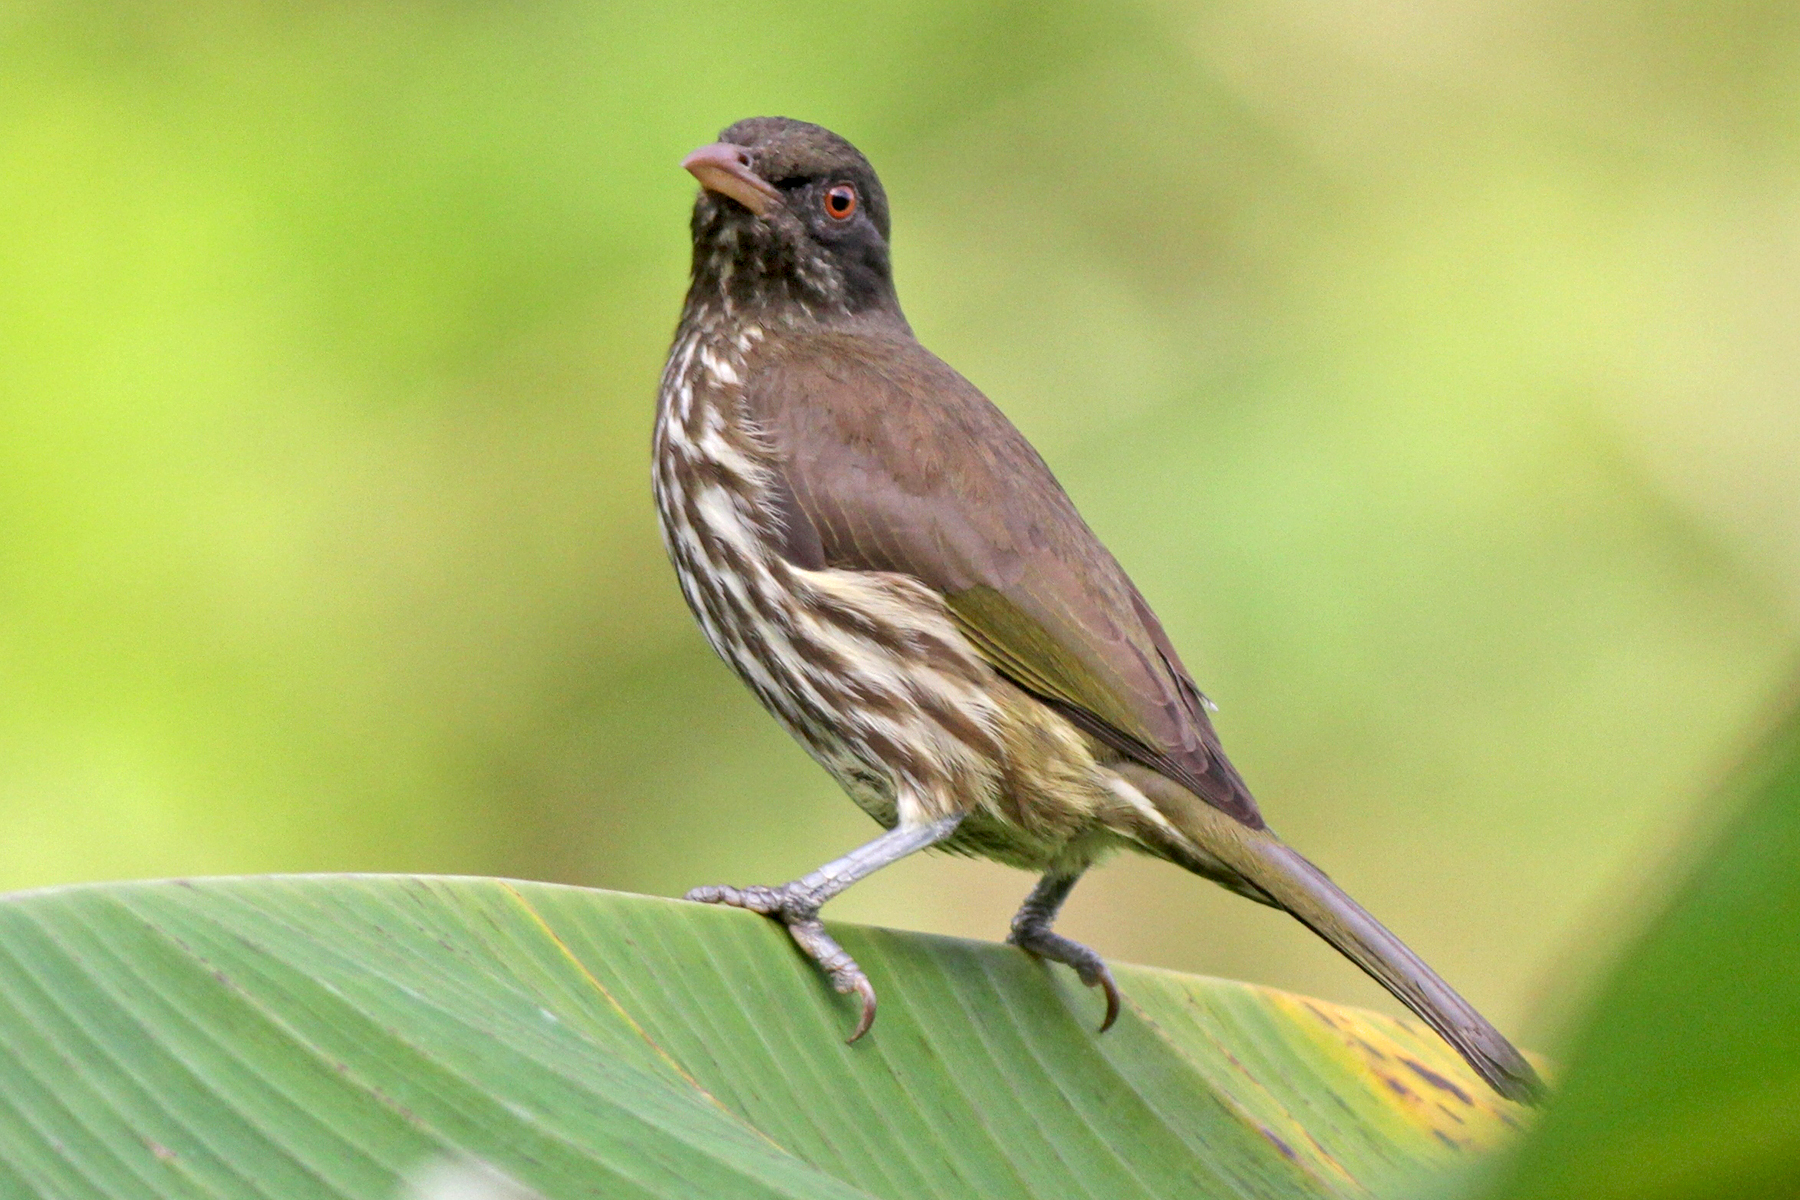 Palmchat in the Dominican Republic (image by Eustace Barnes)